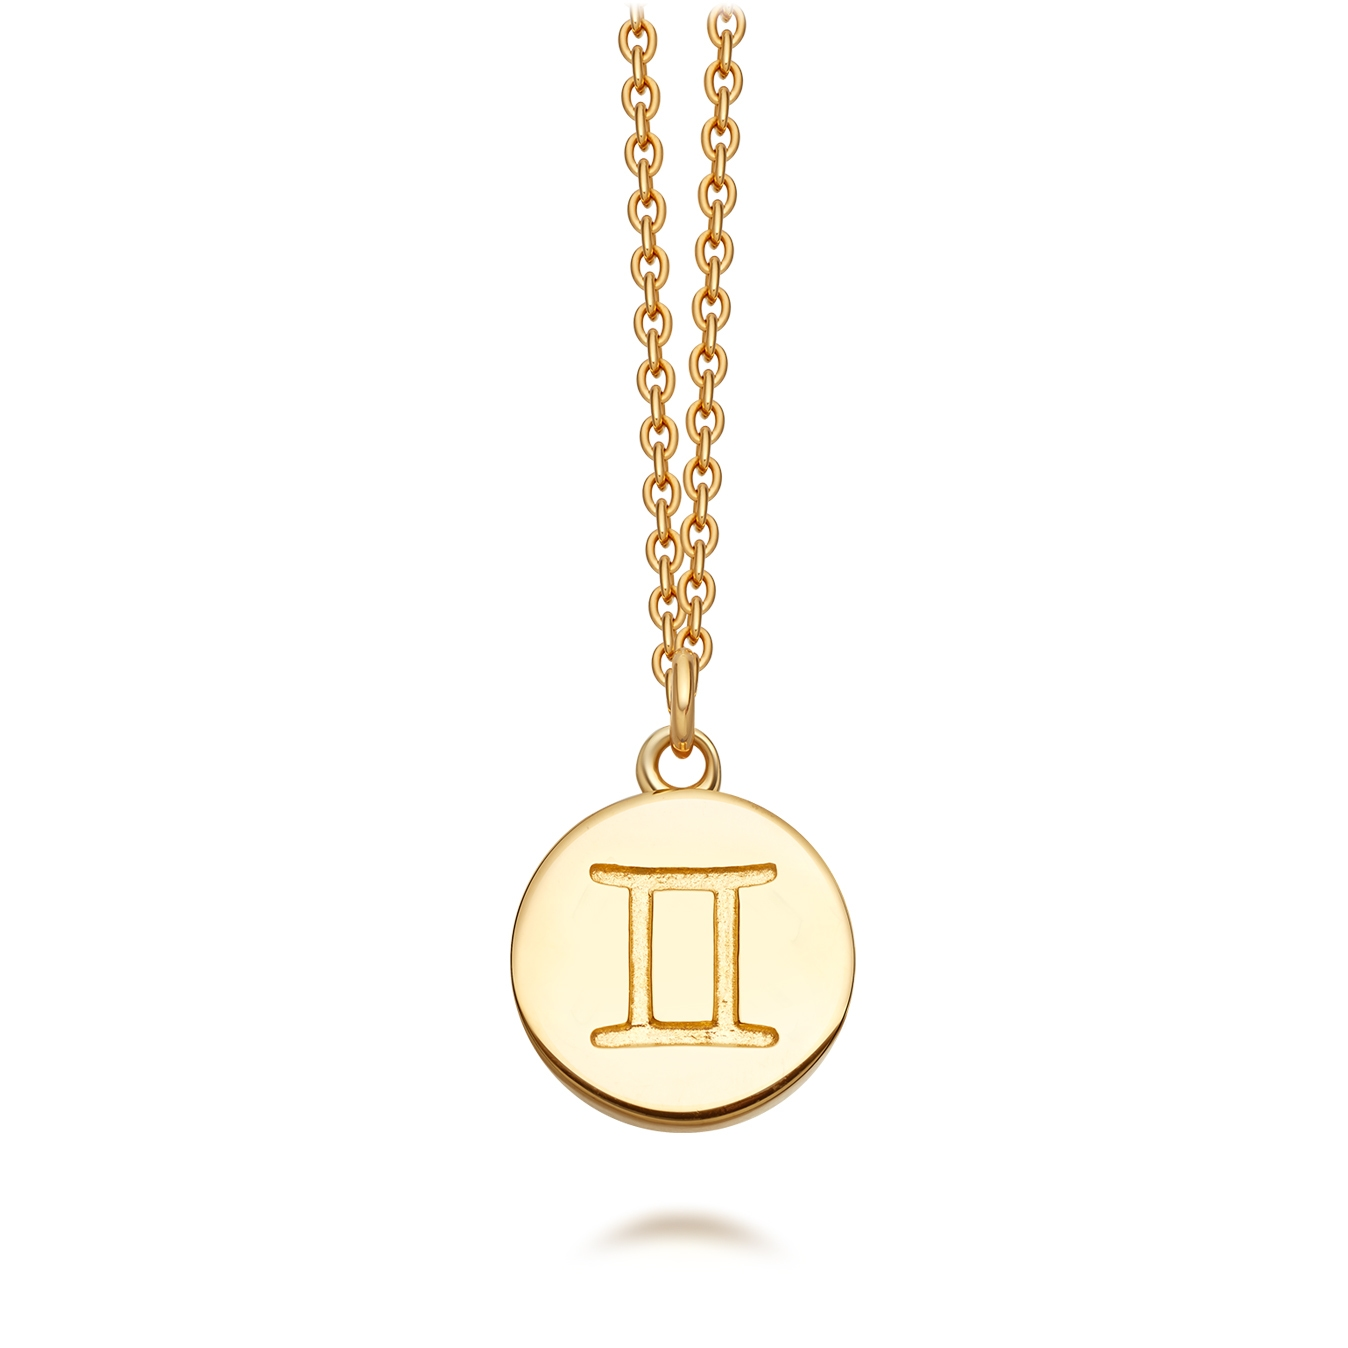 Gold Gemini Zodiac Biography Pendant Necklace